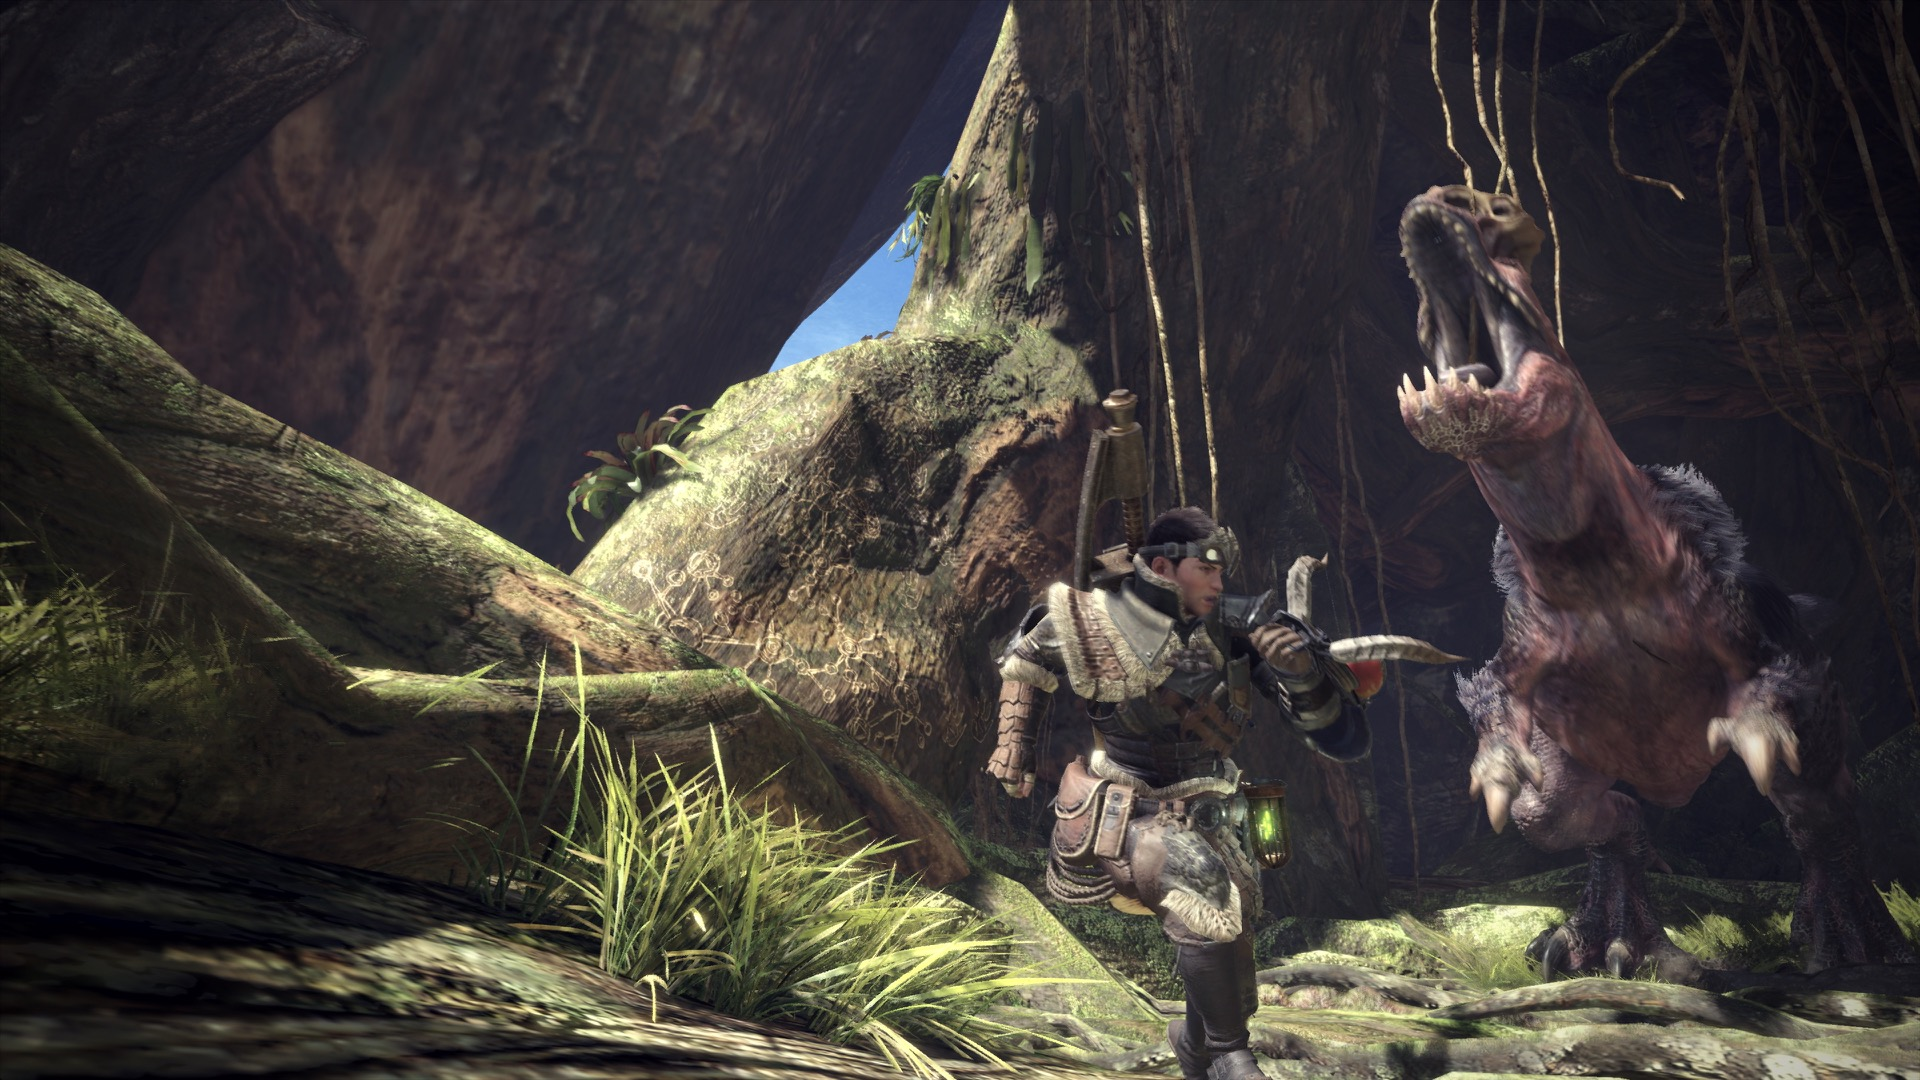 Monster Hunter: World guide: What the heck am I supposed to